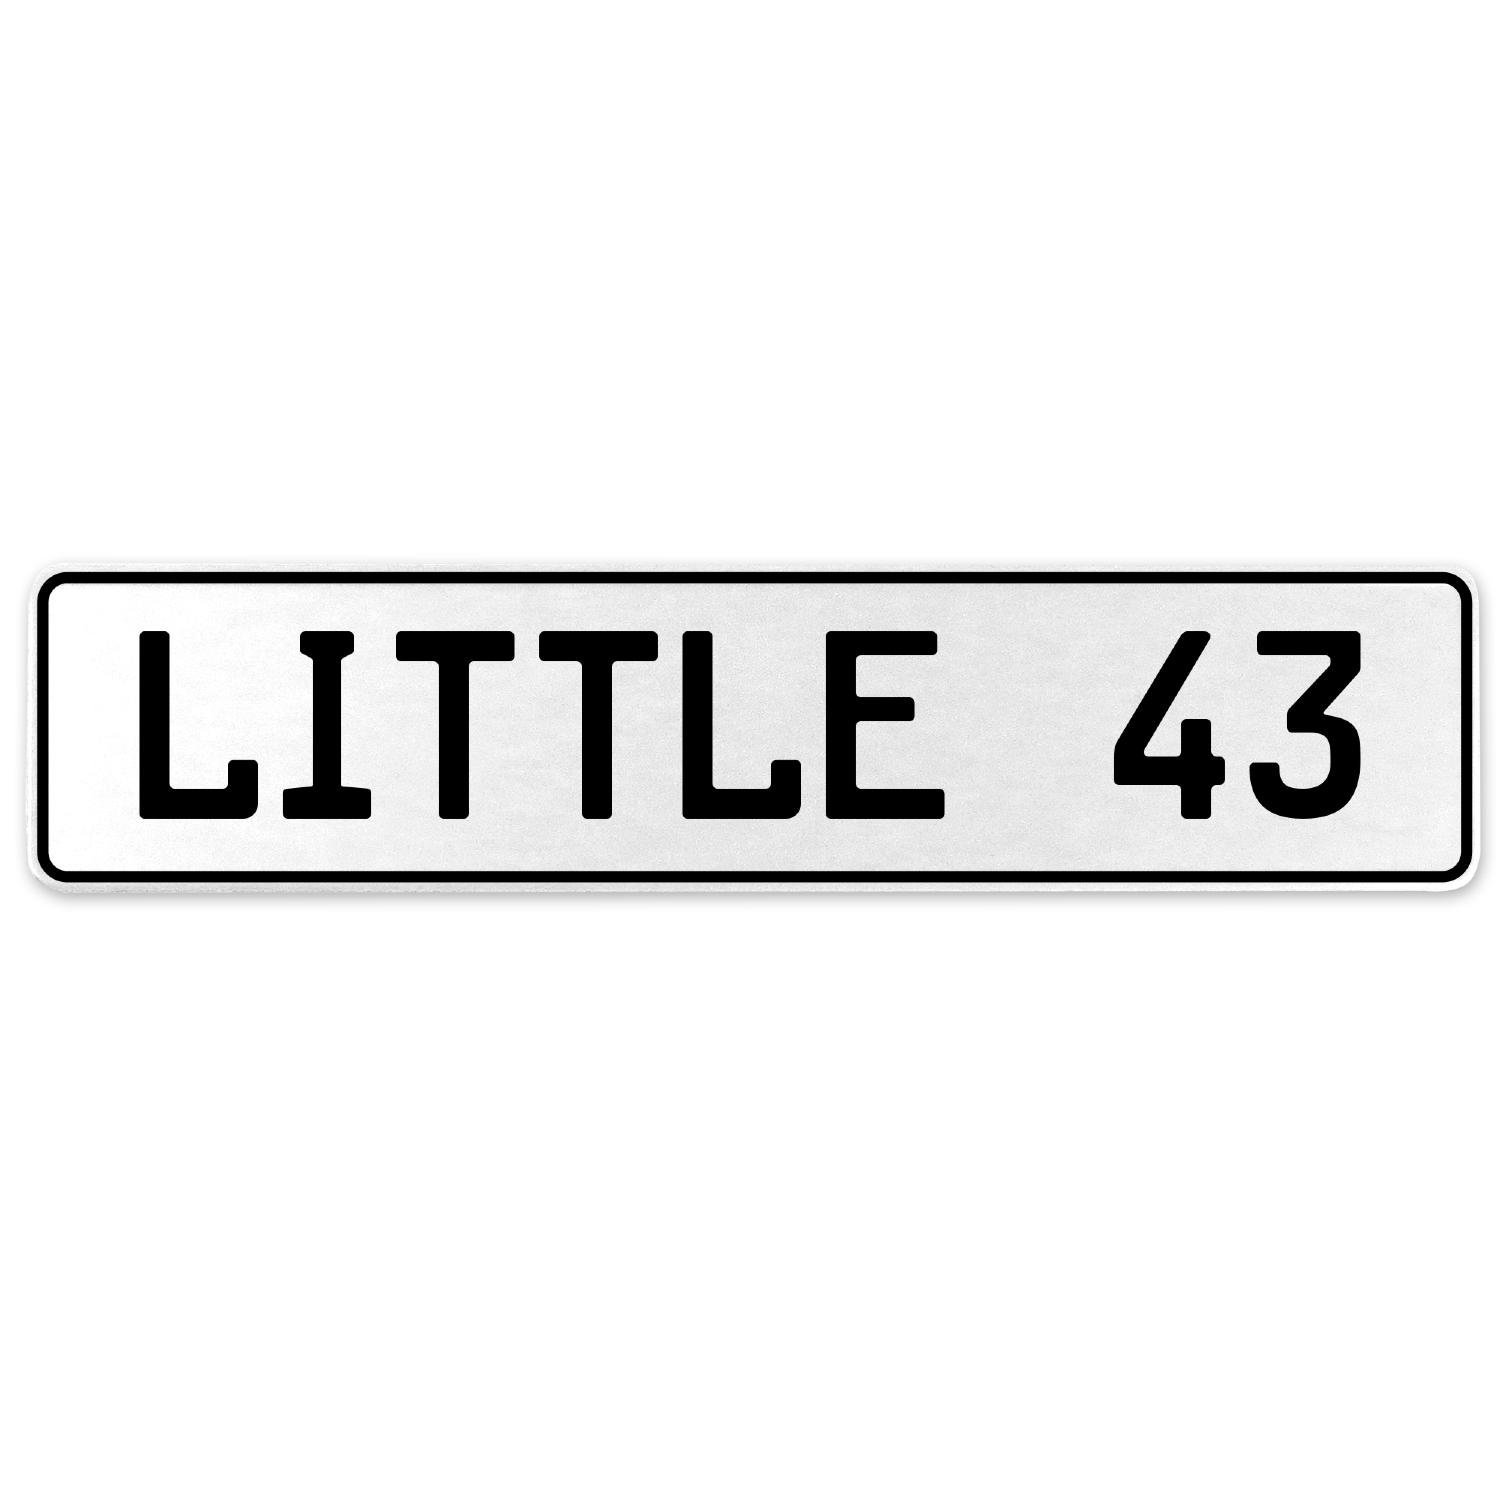 Vintage Parts 556323 Little 43 White Stamped Aluminum European License Plate